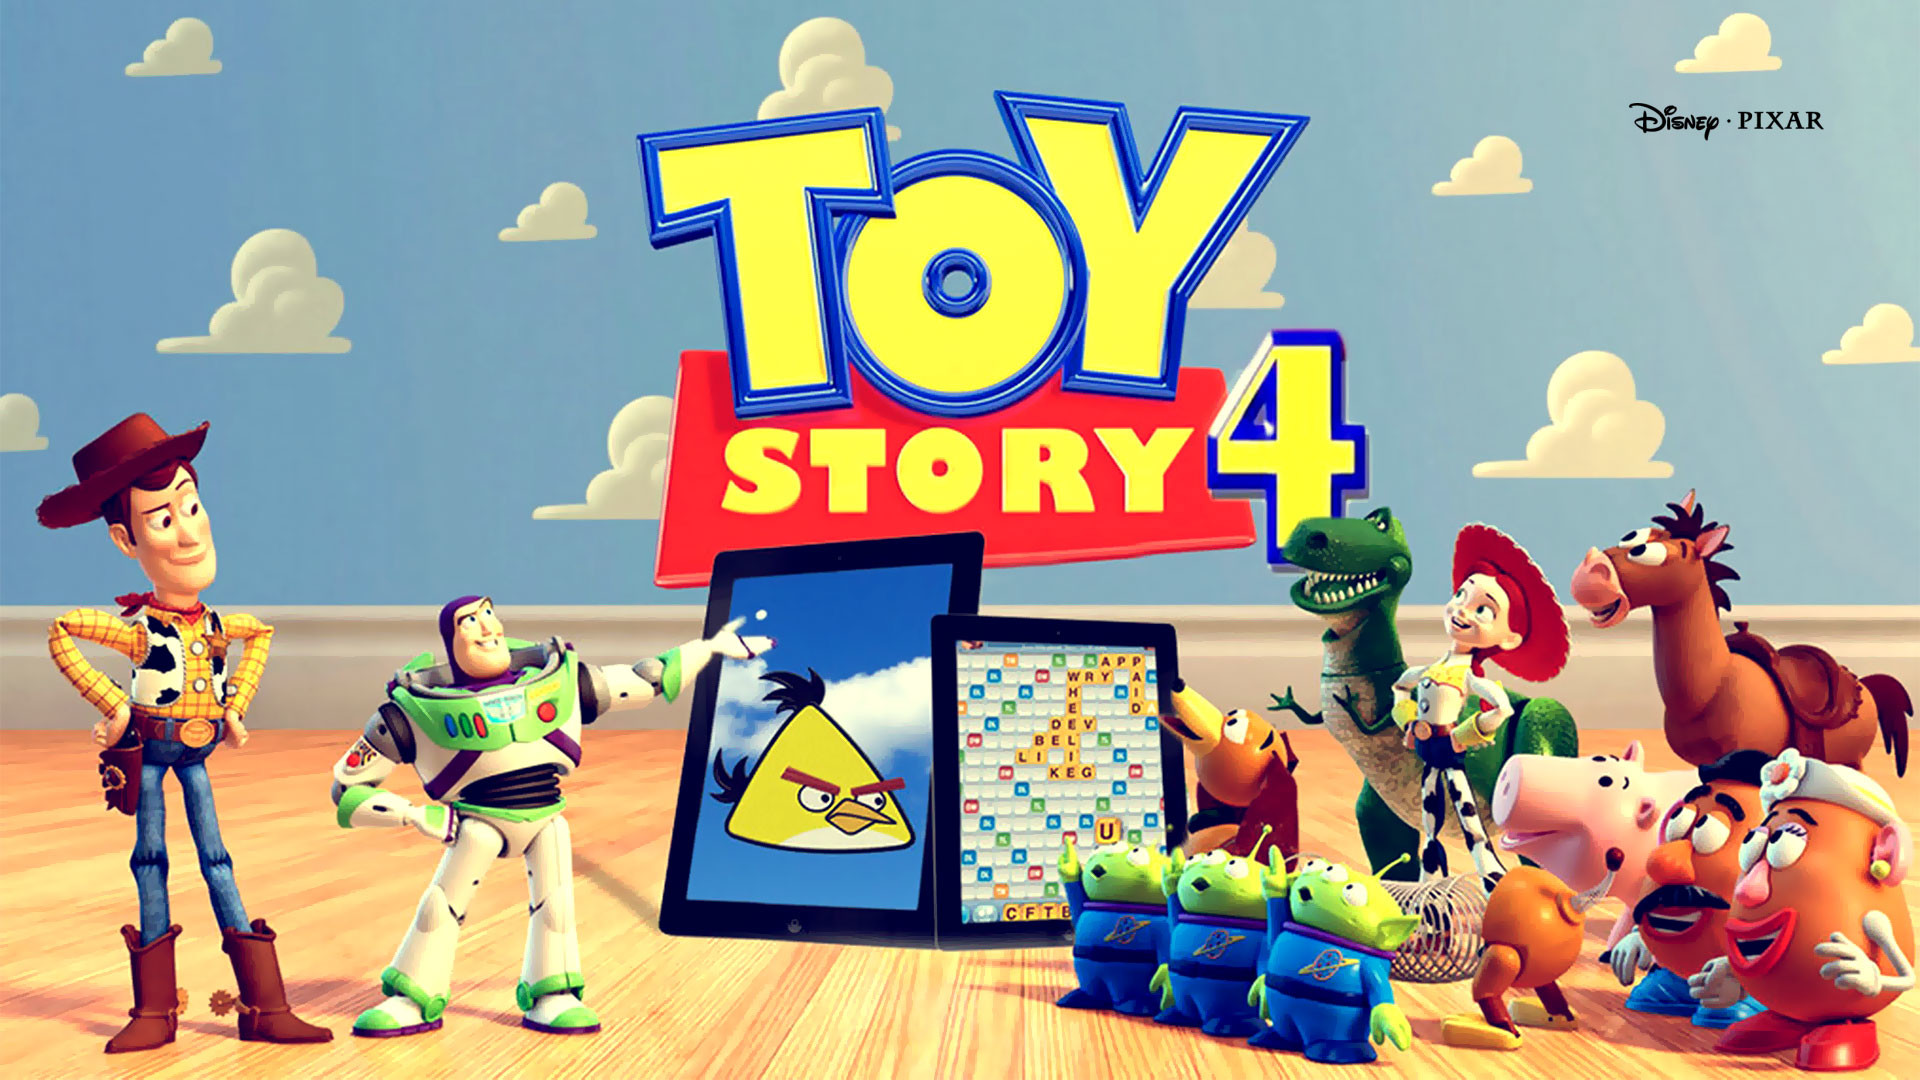 Toy Story 4 wallpaper HD film 2018 poster image